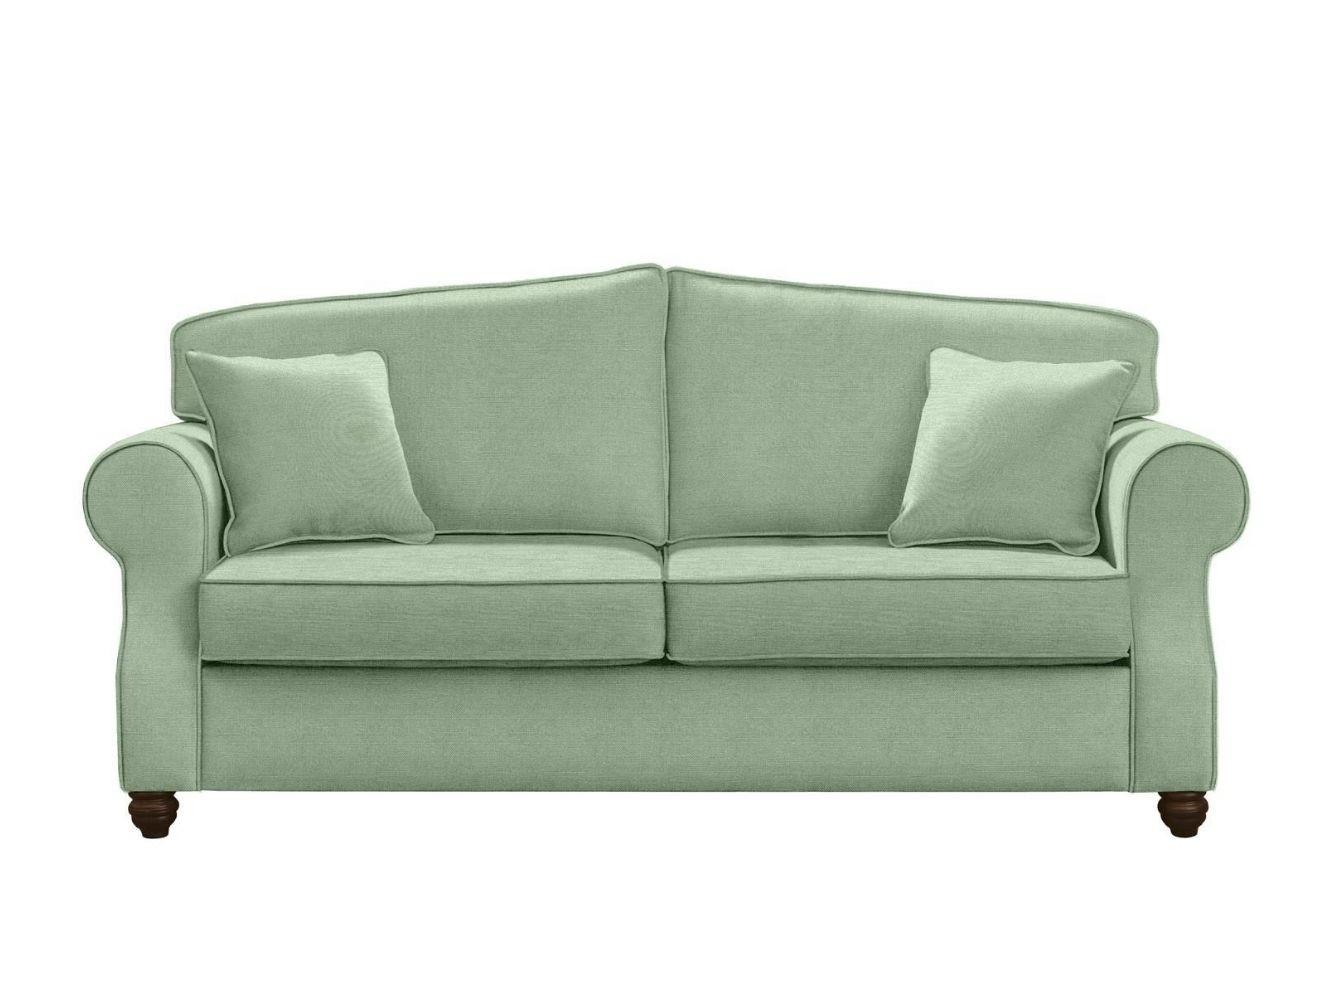 This is how I look in Linen Foliage with reflex foam seat cushions